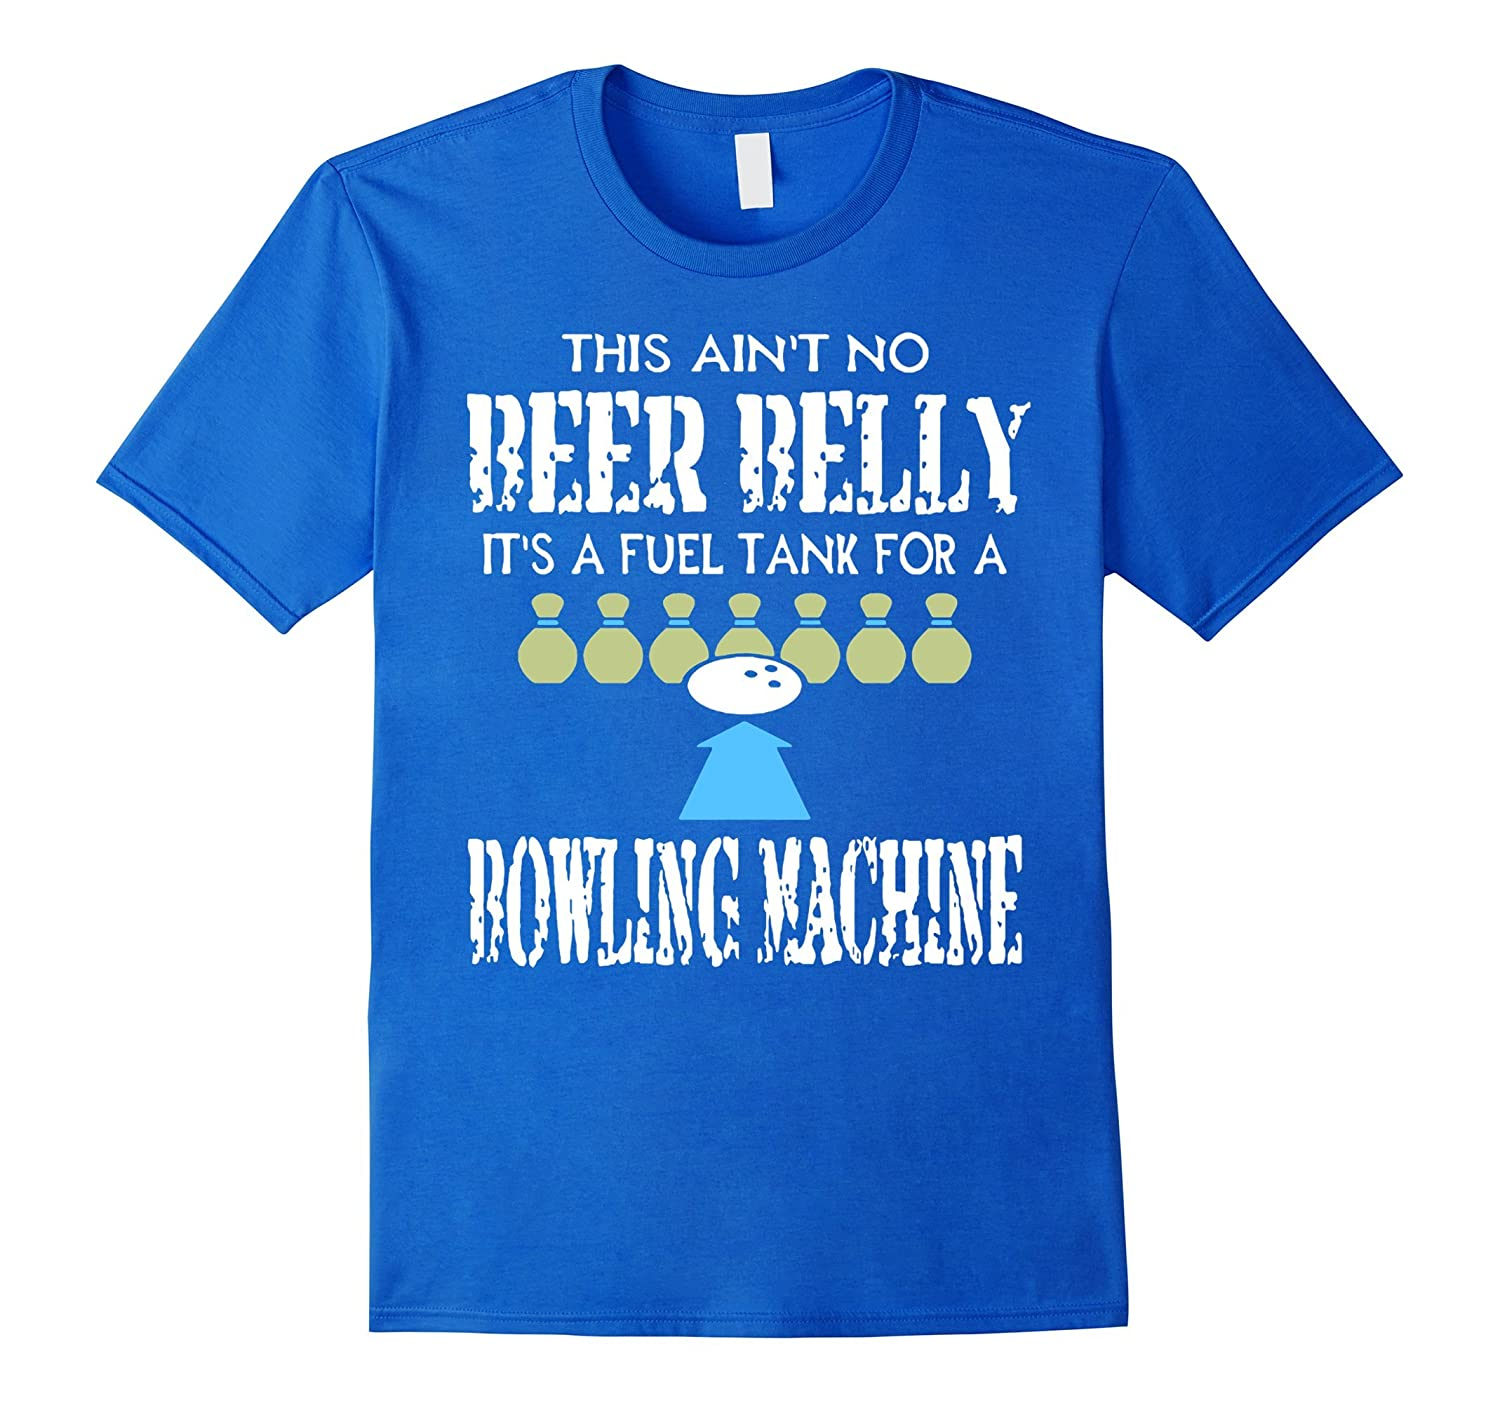 910efbad This Aint No Beer Belly amp Funny Bowling Machine Gift Tshirt-RT ...